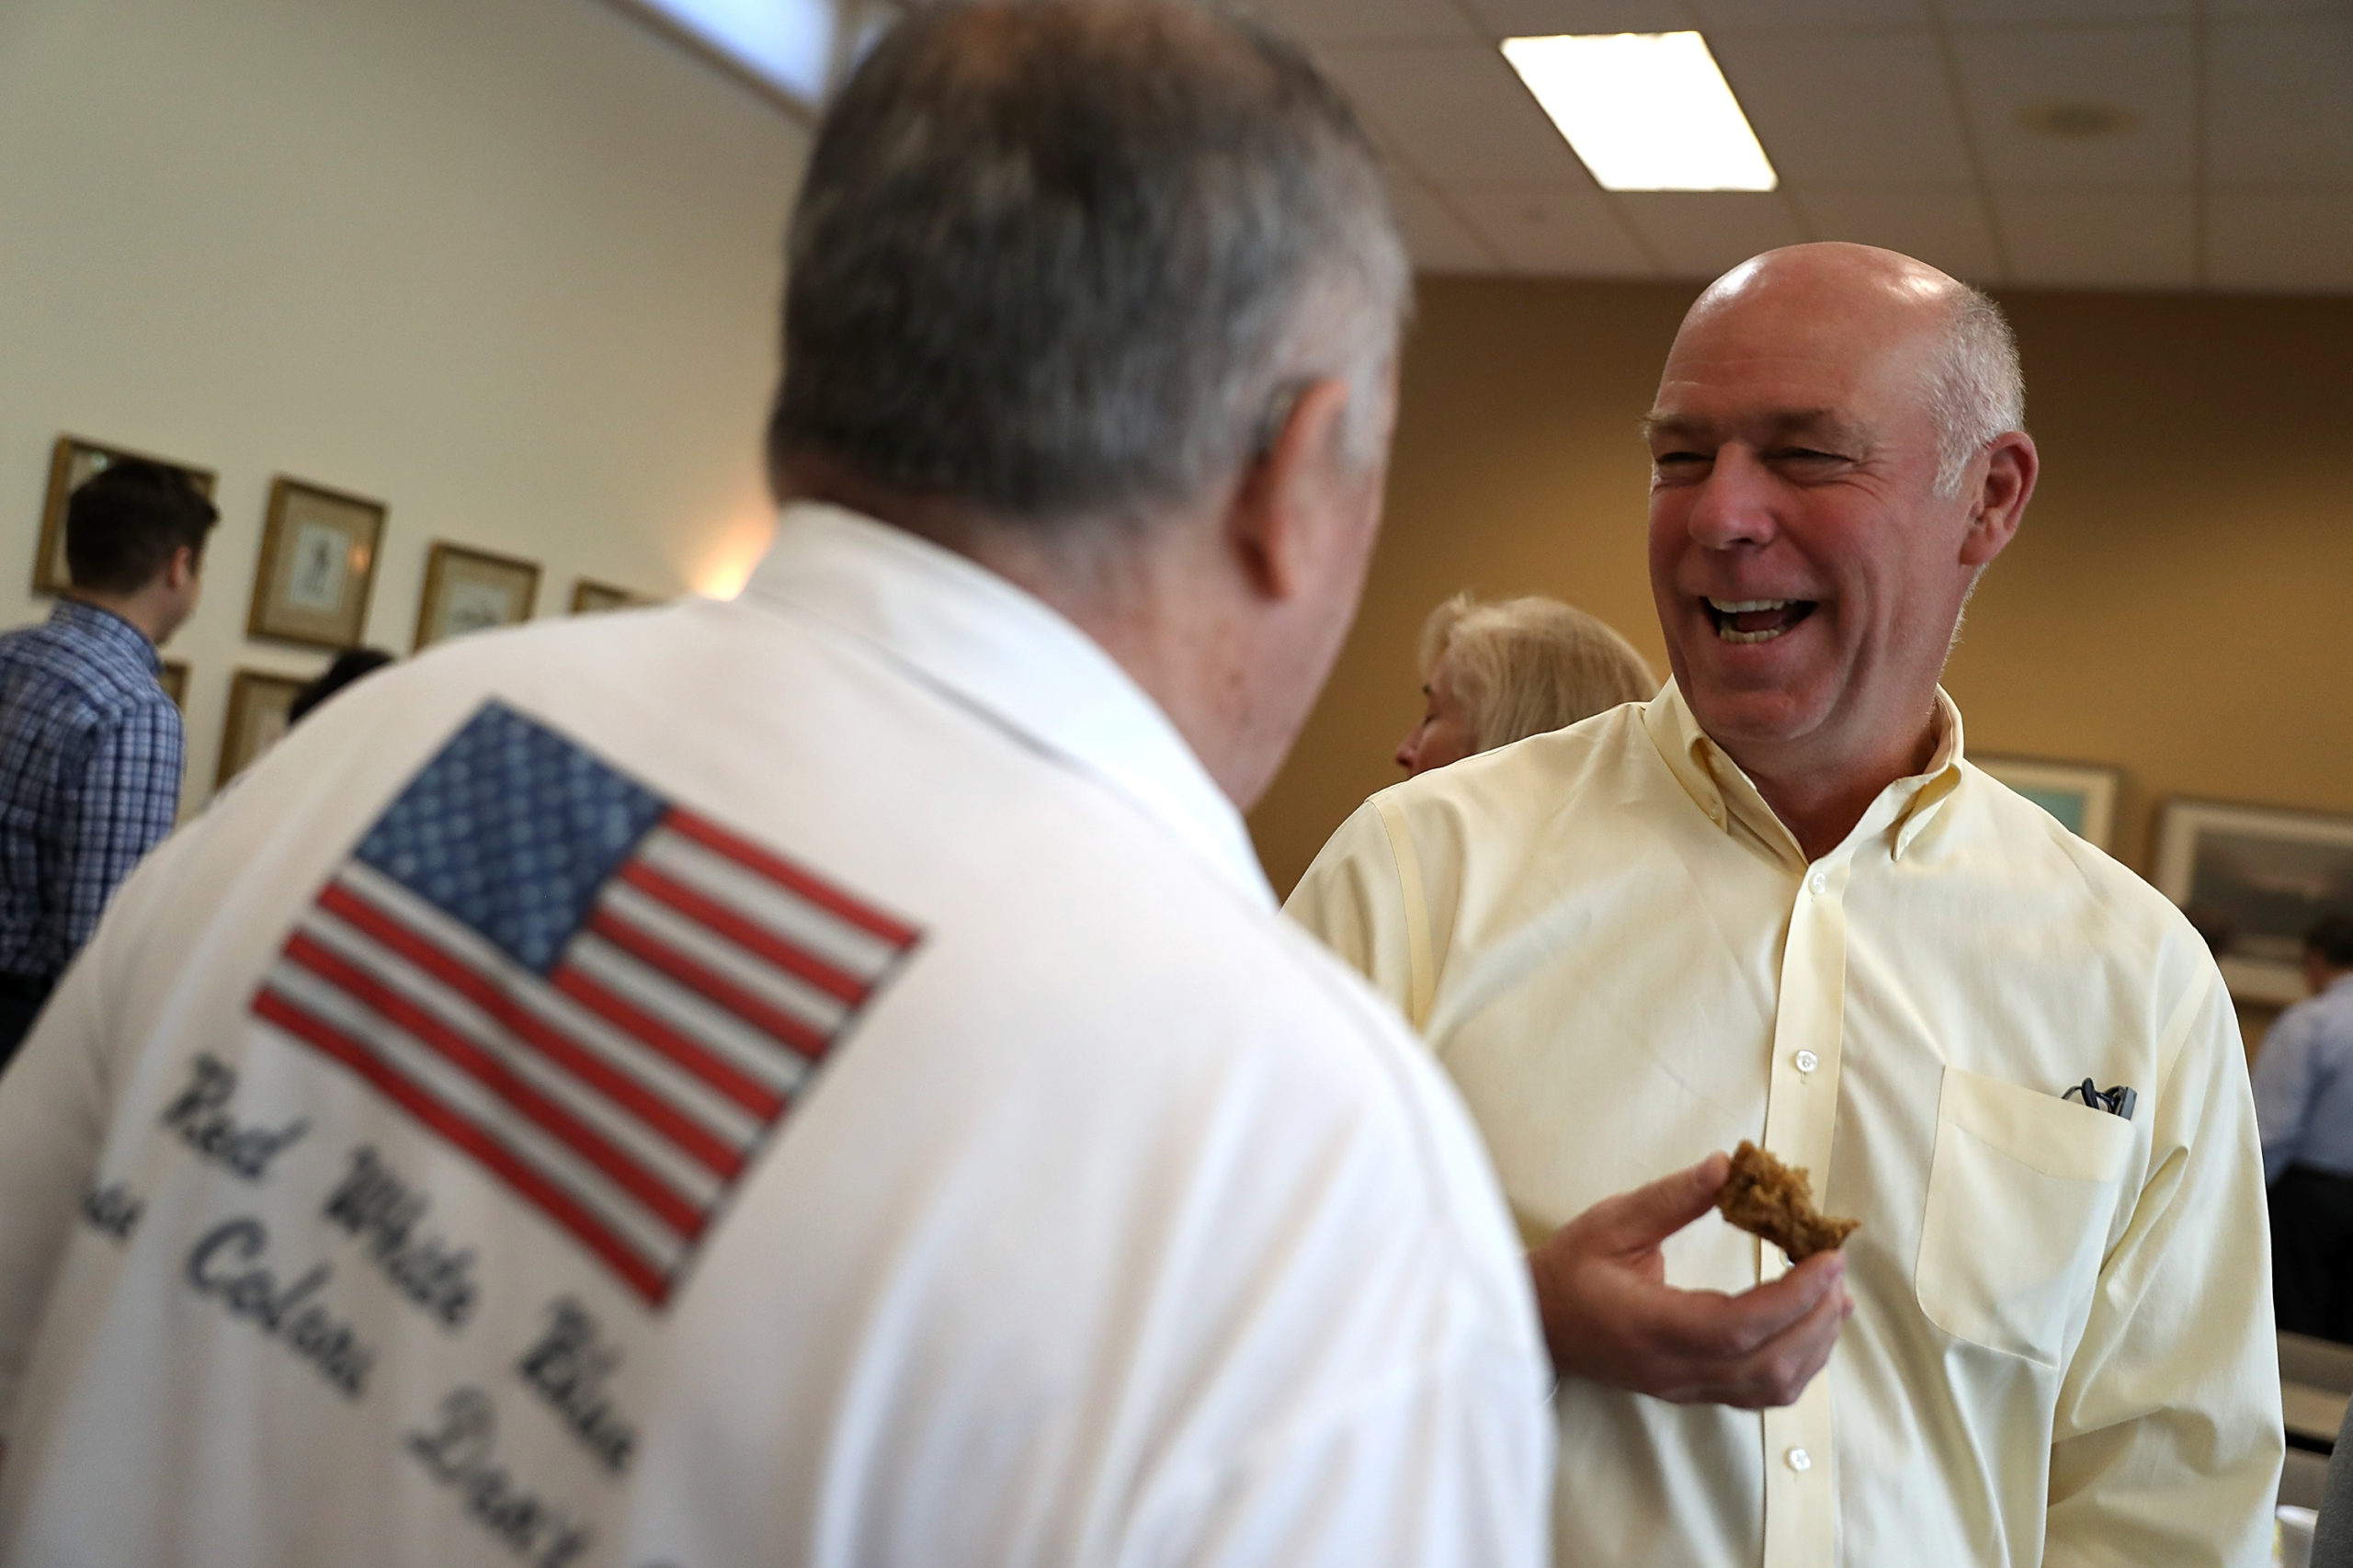 Republican Rep. Greg Gianforte talks with a supporter during a campaign meet and greet in 2017 in Missoula, Montana. (Justin Sullivan/Getty Images)